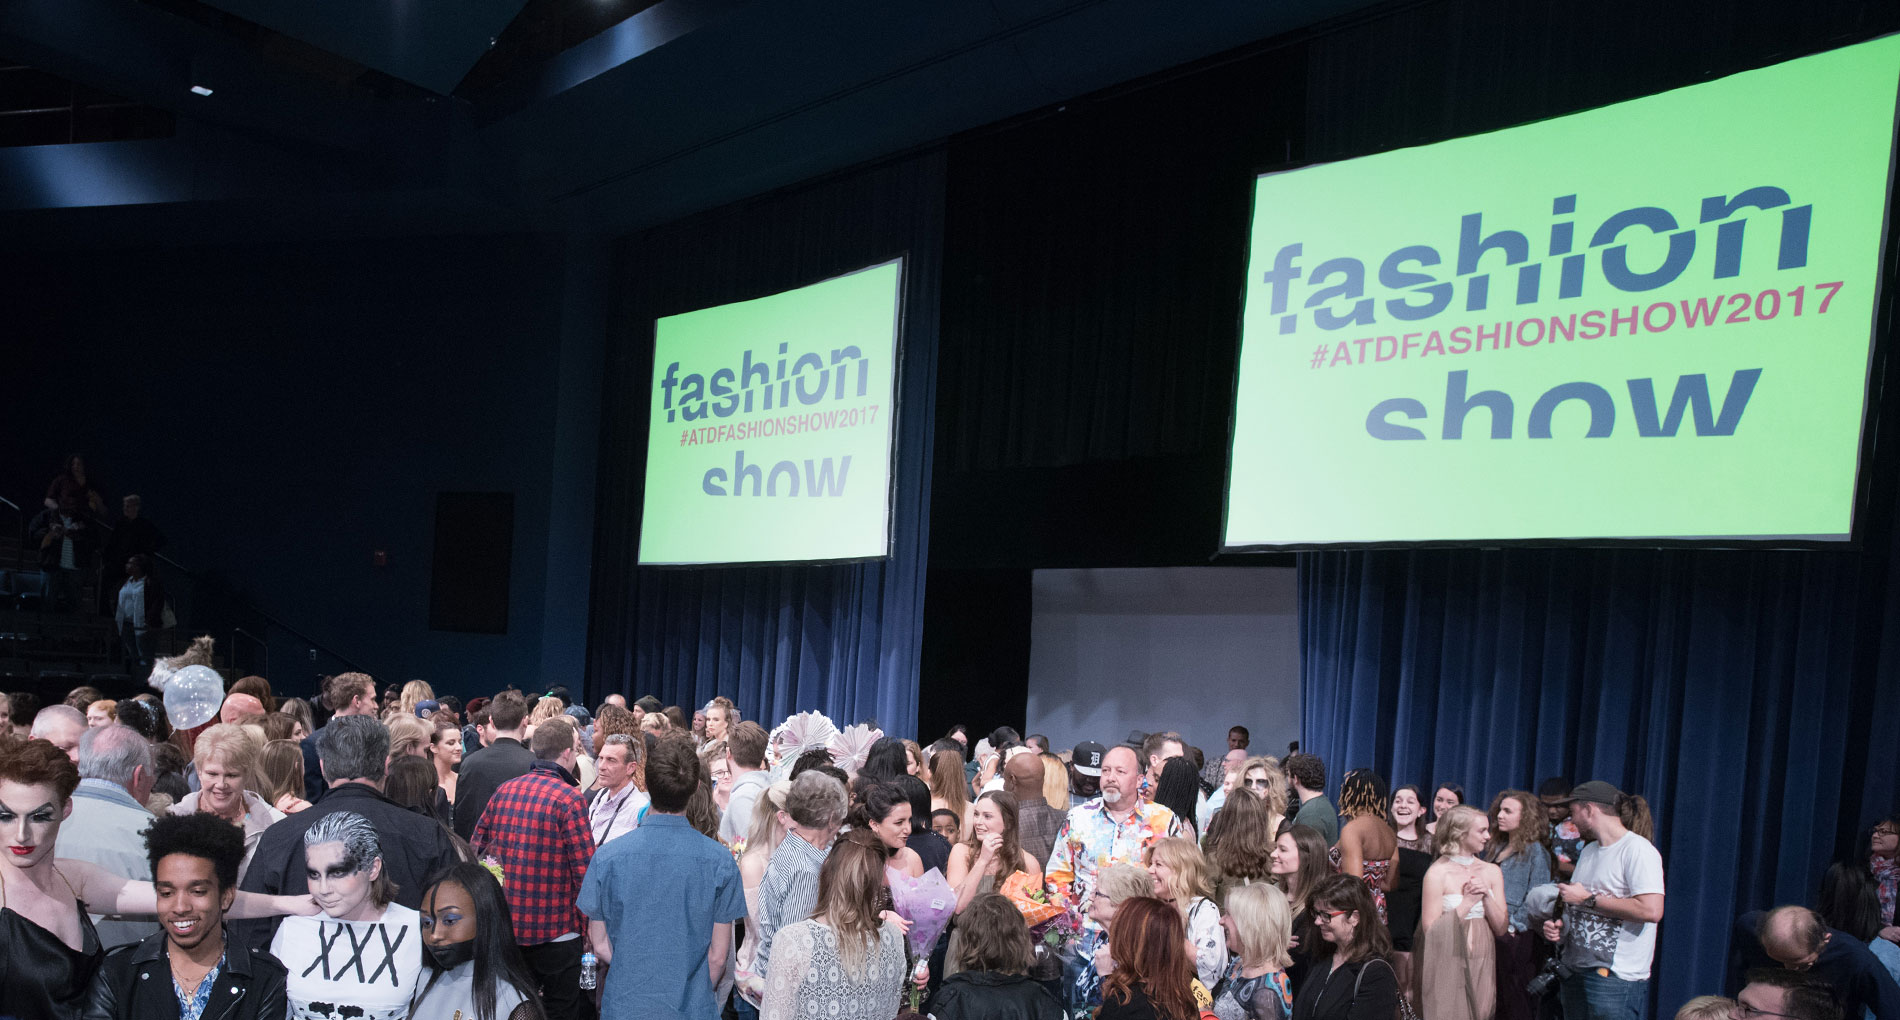 Students Gain Tactical Experience from ATD Fashion Show